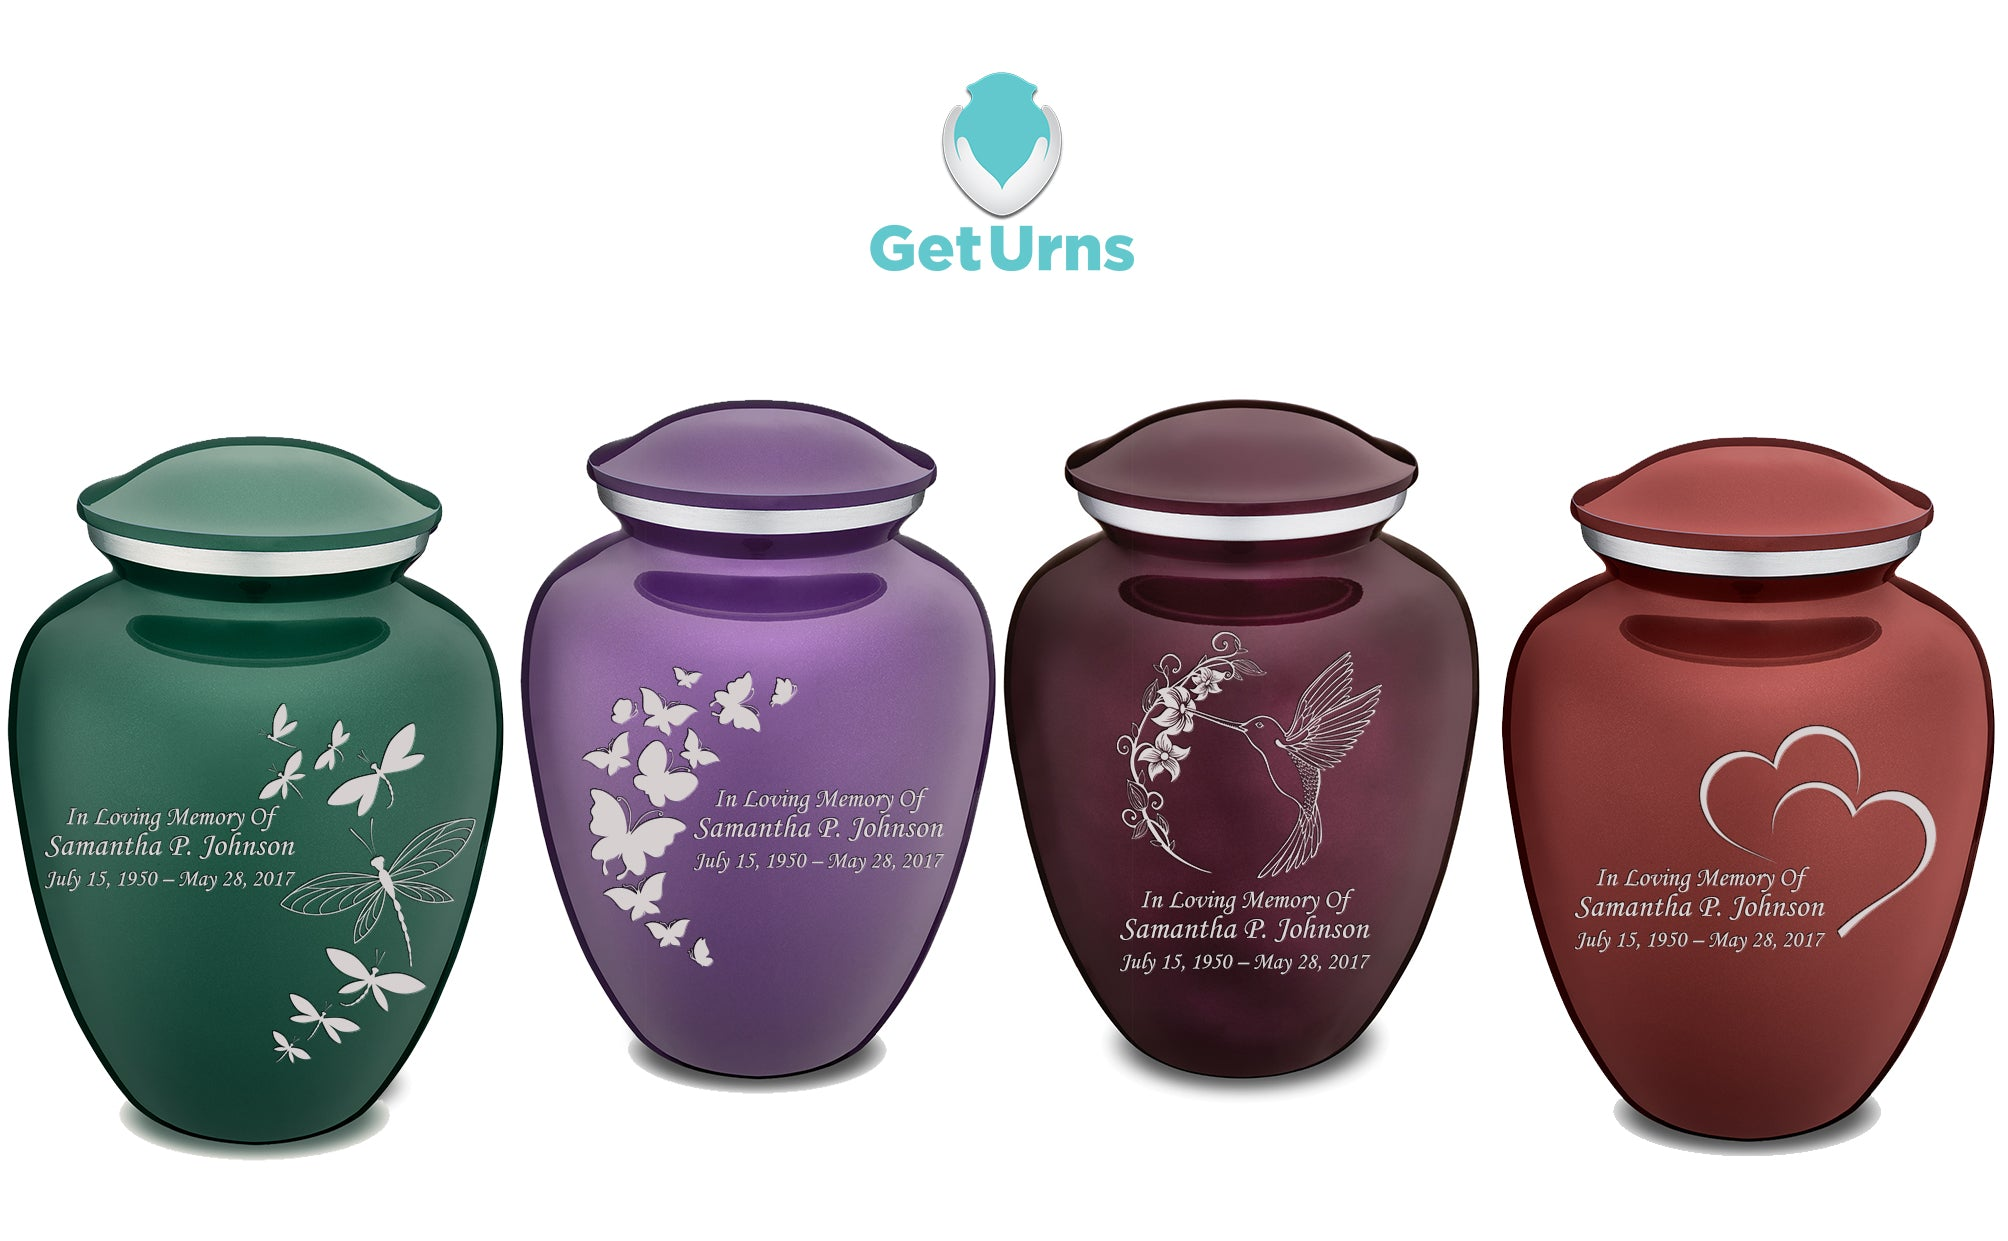 Engraving on Cremation urns